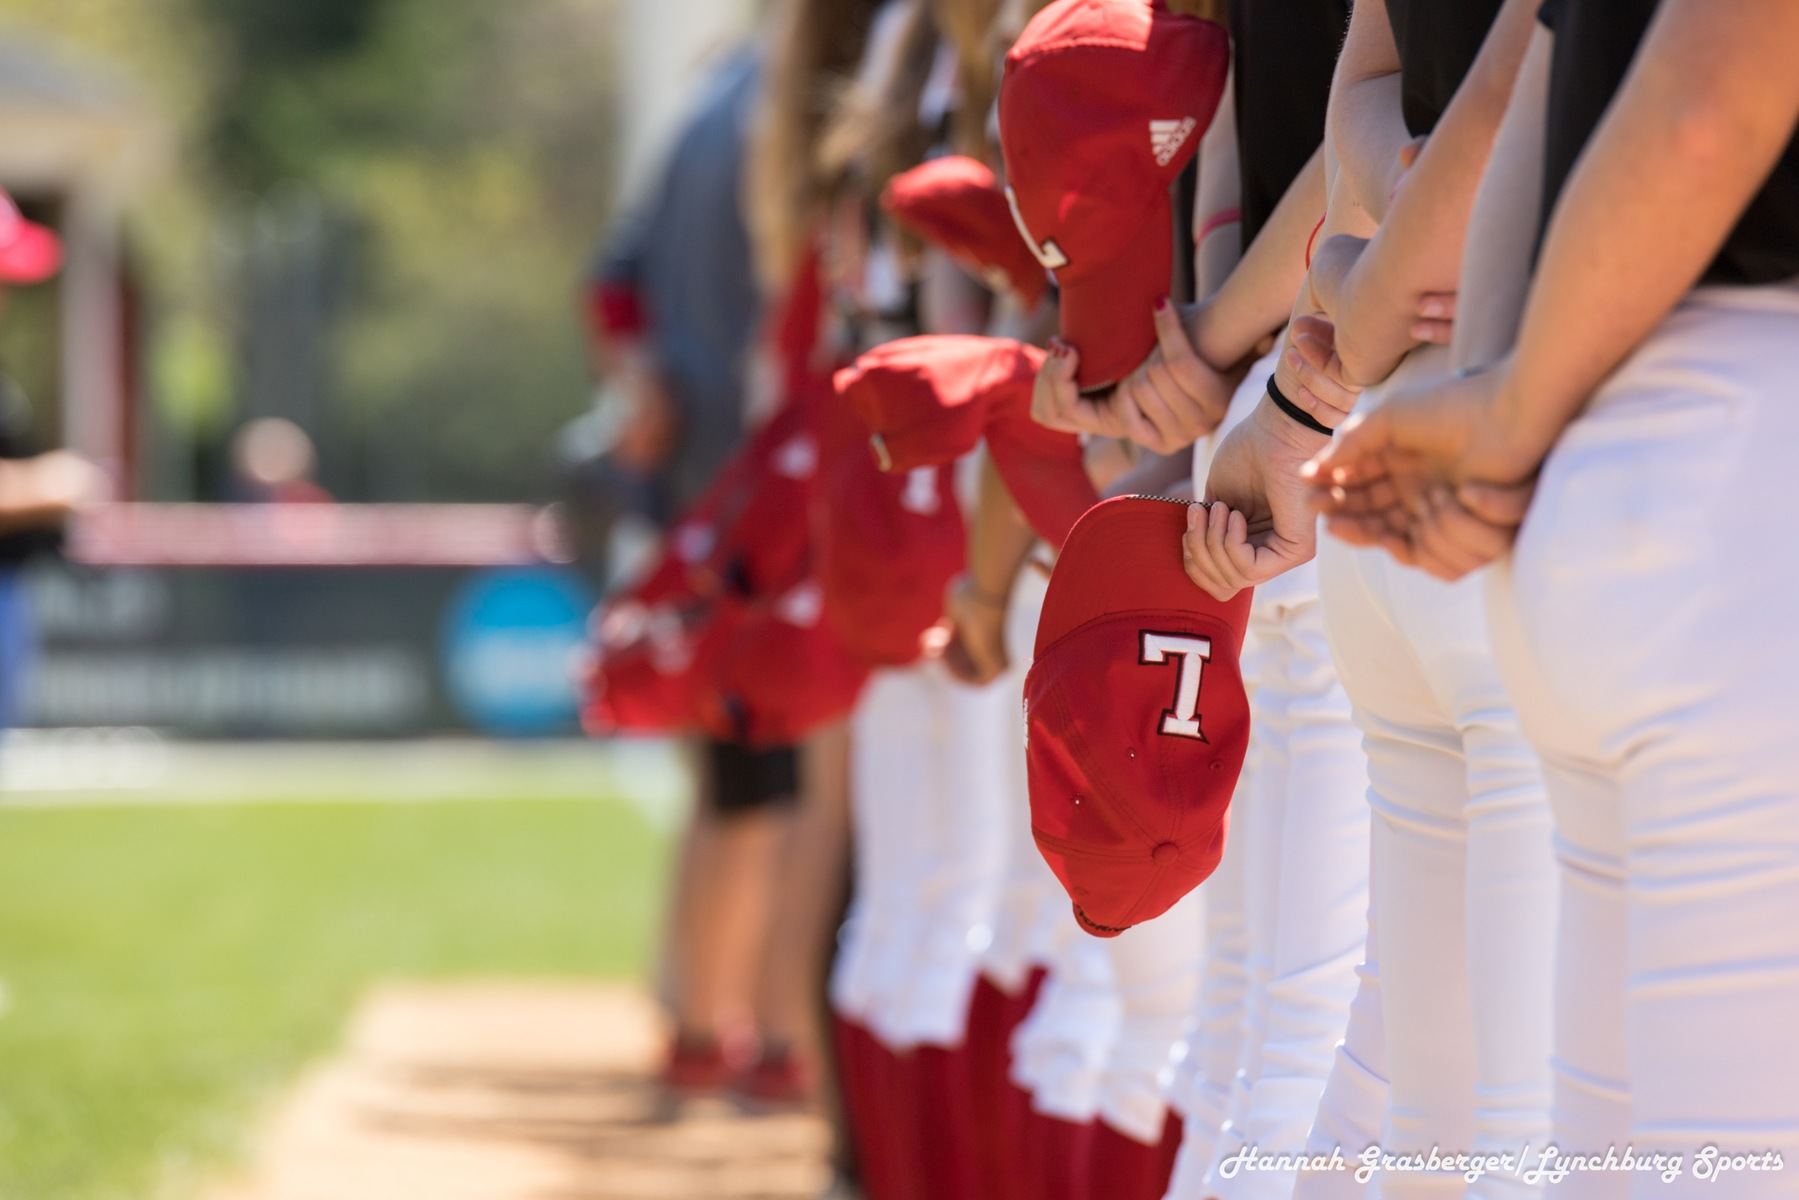 Artistic photo of Lynchburg players' hats looking down a line.